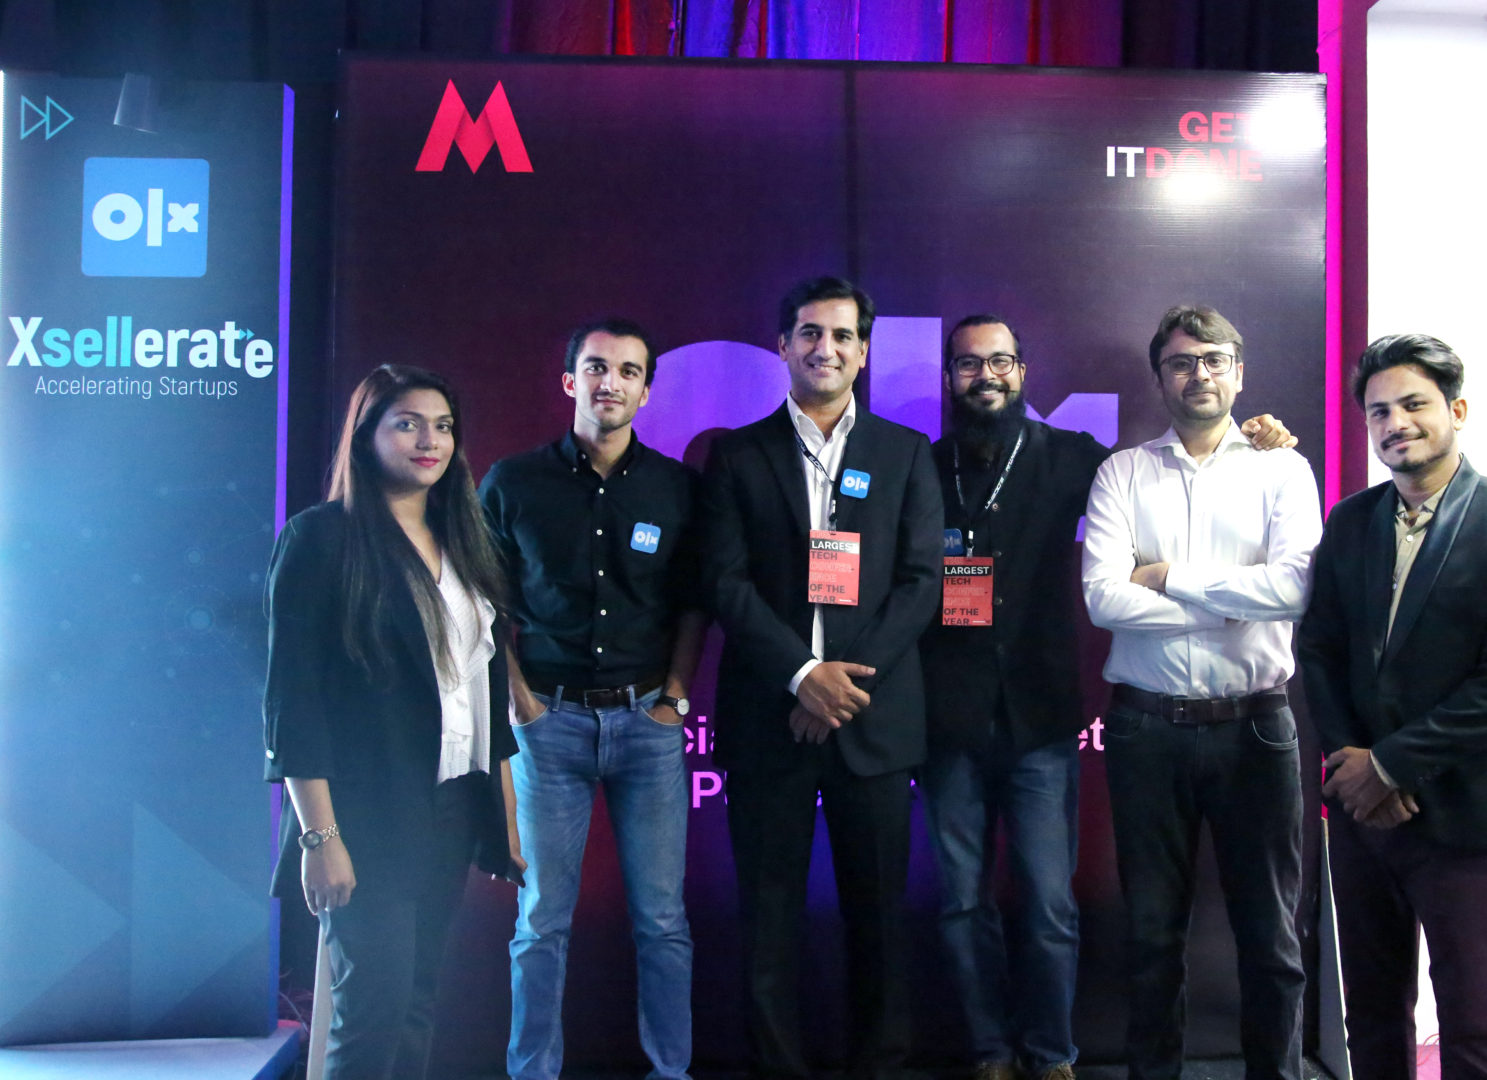 OLX Launches Xsellerate - Startup Acceleration Program at Momentum Tech Conference